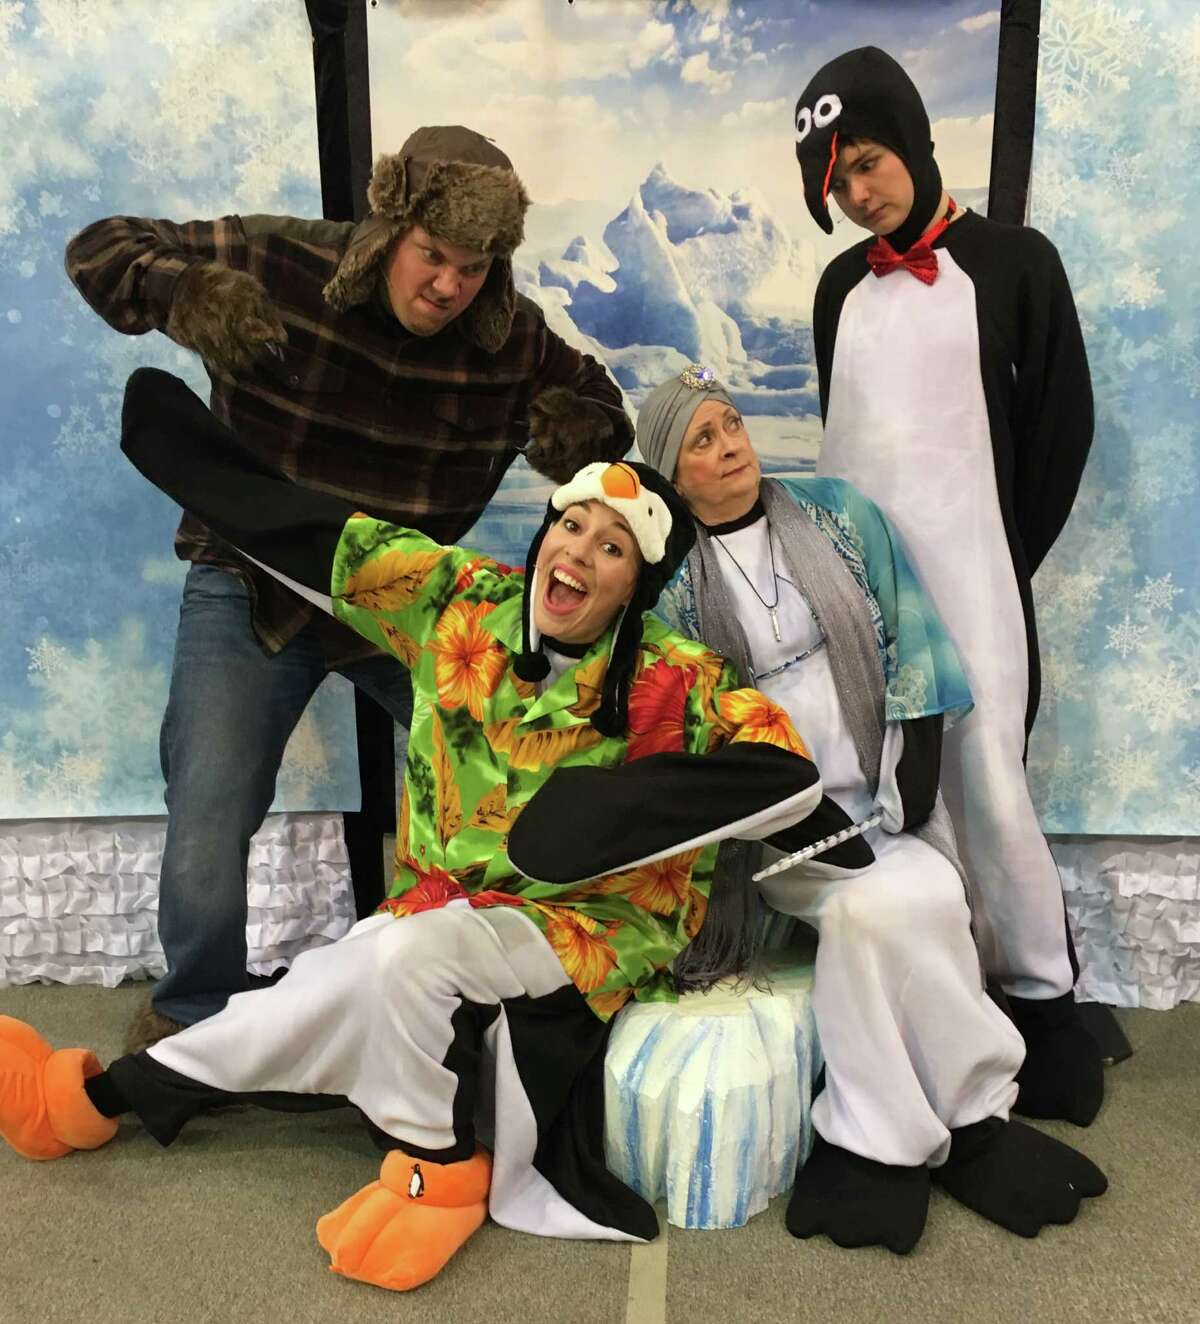 Fort Bend County Libraries' Missouri City Branch Library will present a children's theater performance by the Noyes Fine Arts Foundation of an original musical-theater production of